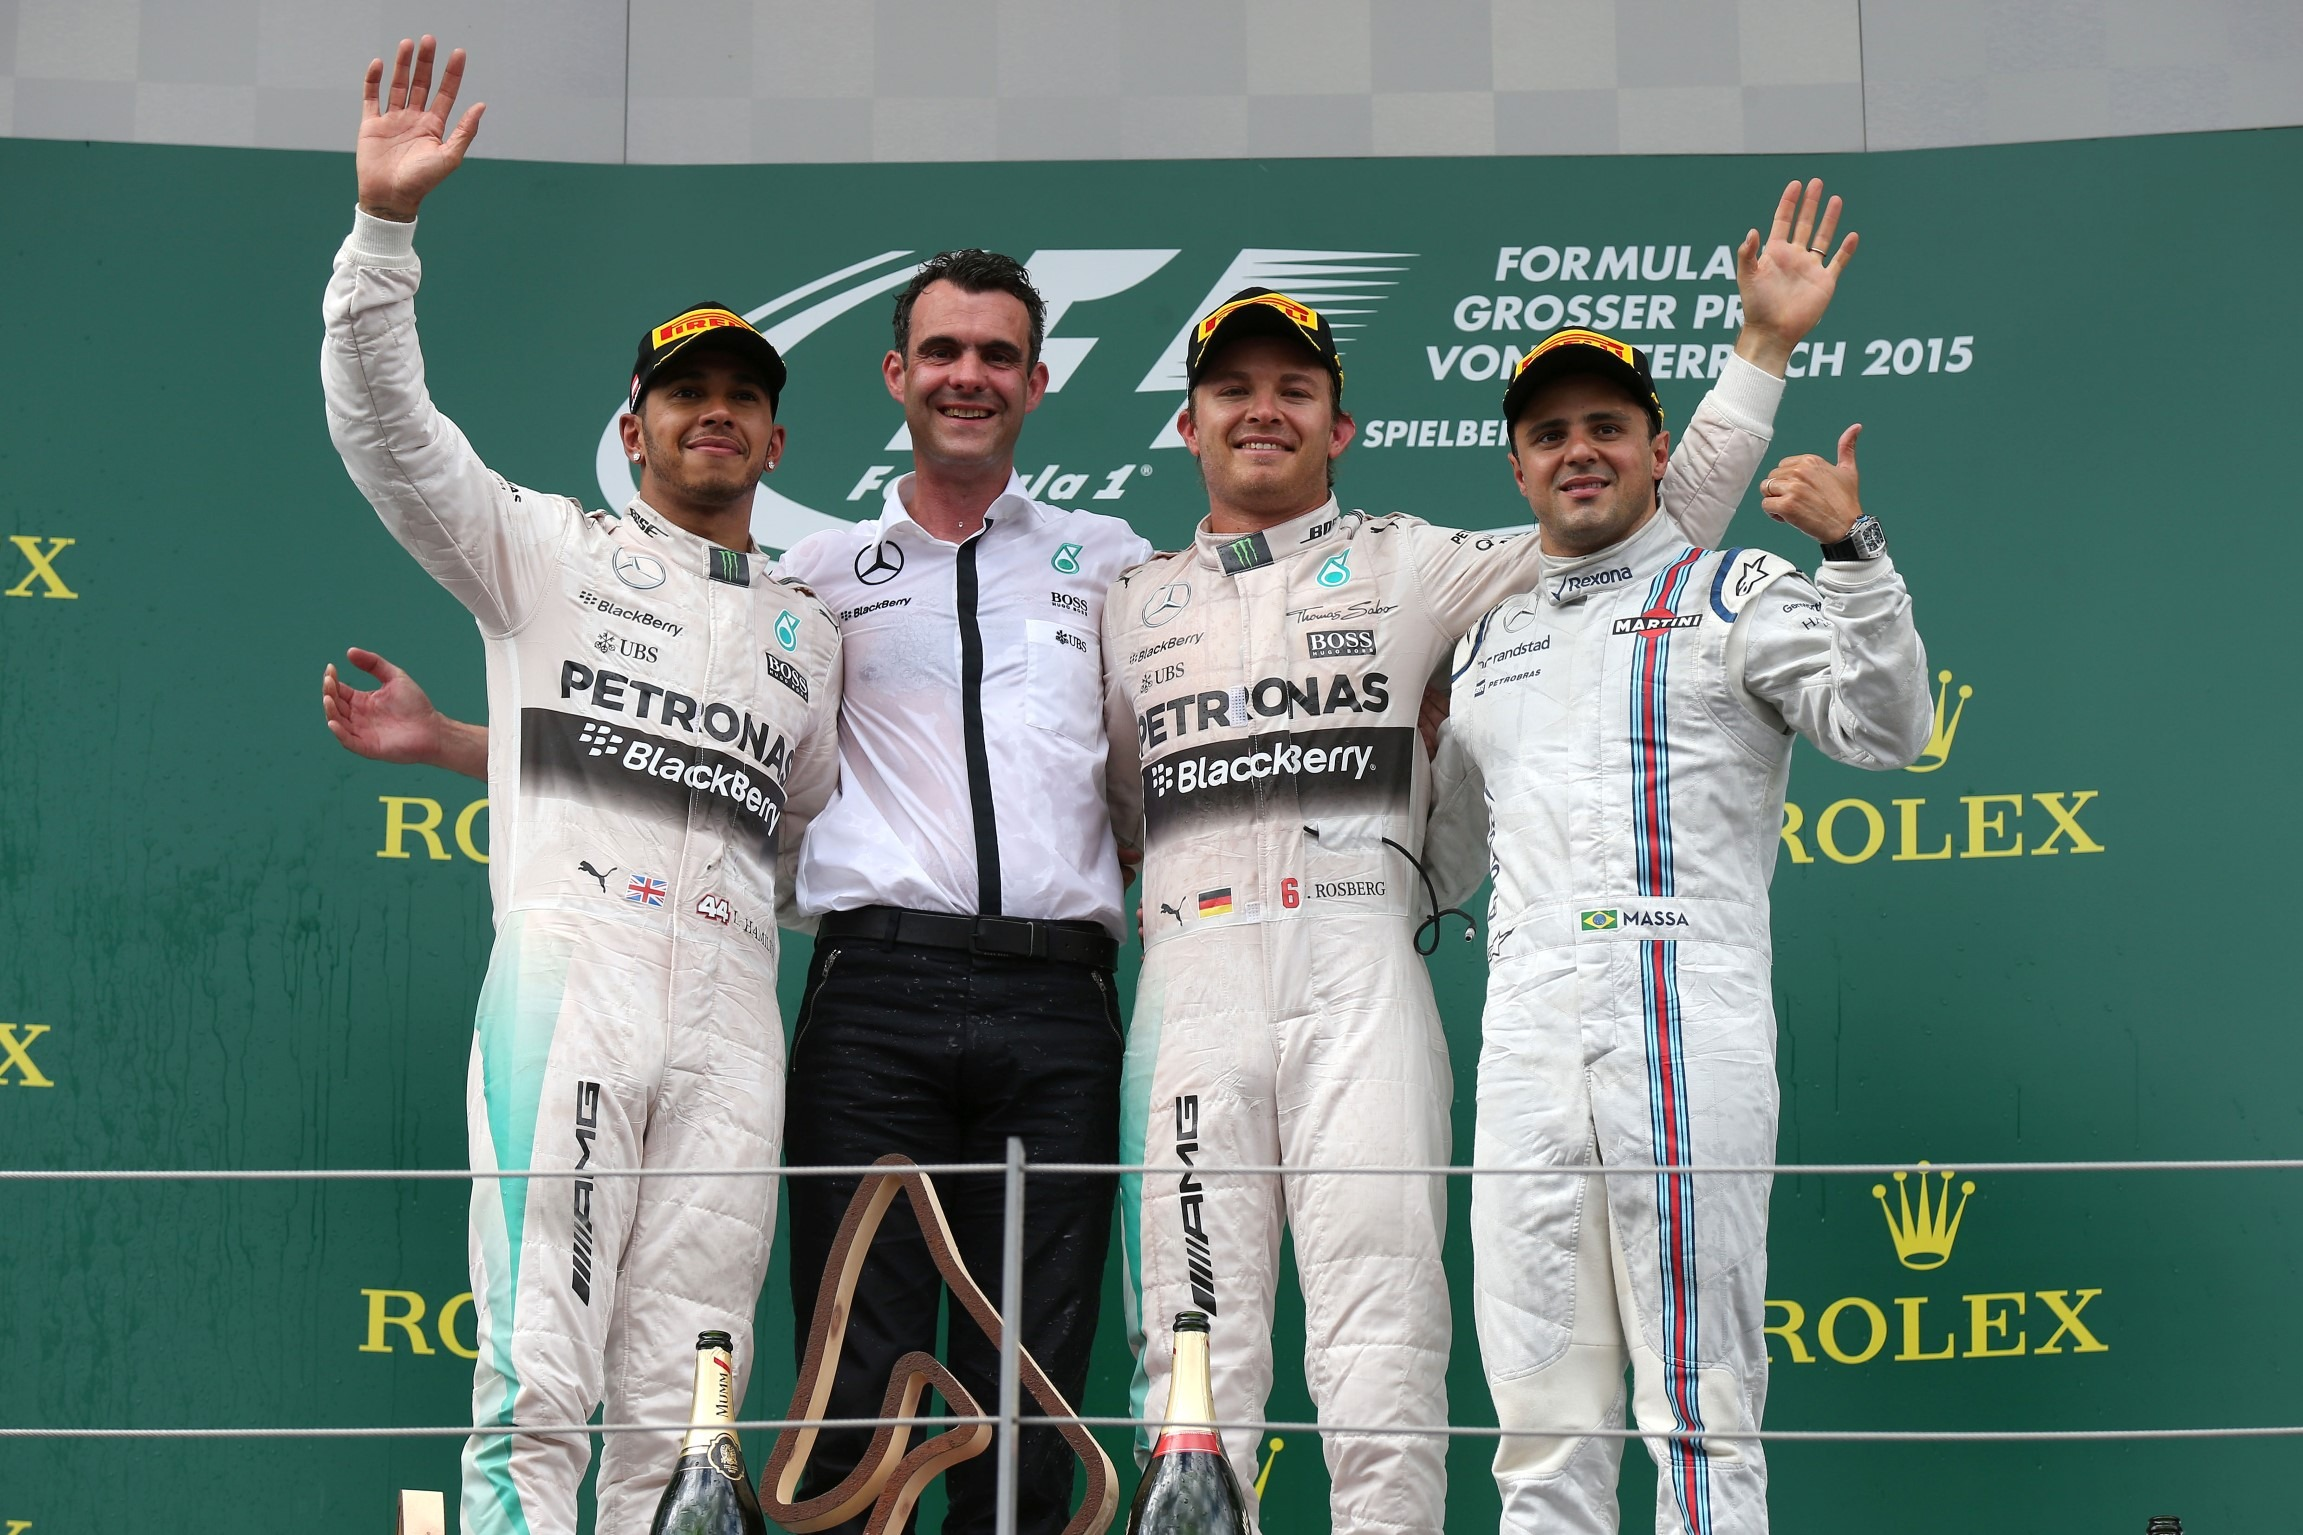 f1 results - photo #22